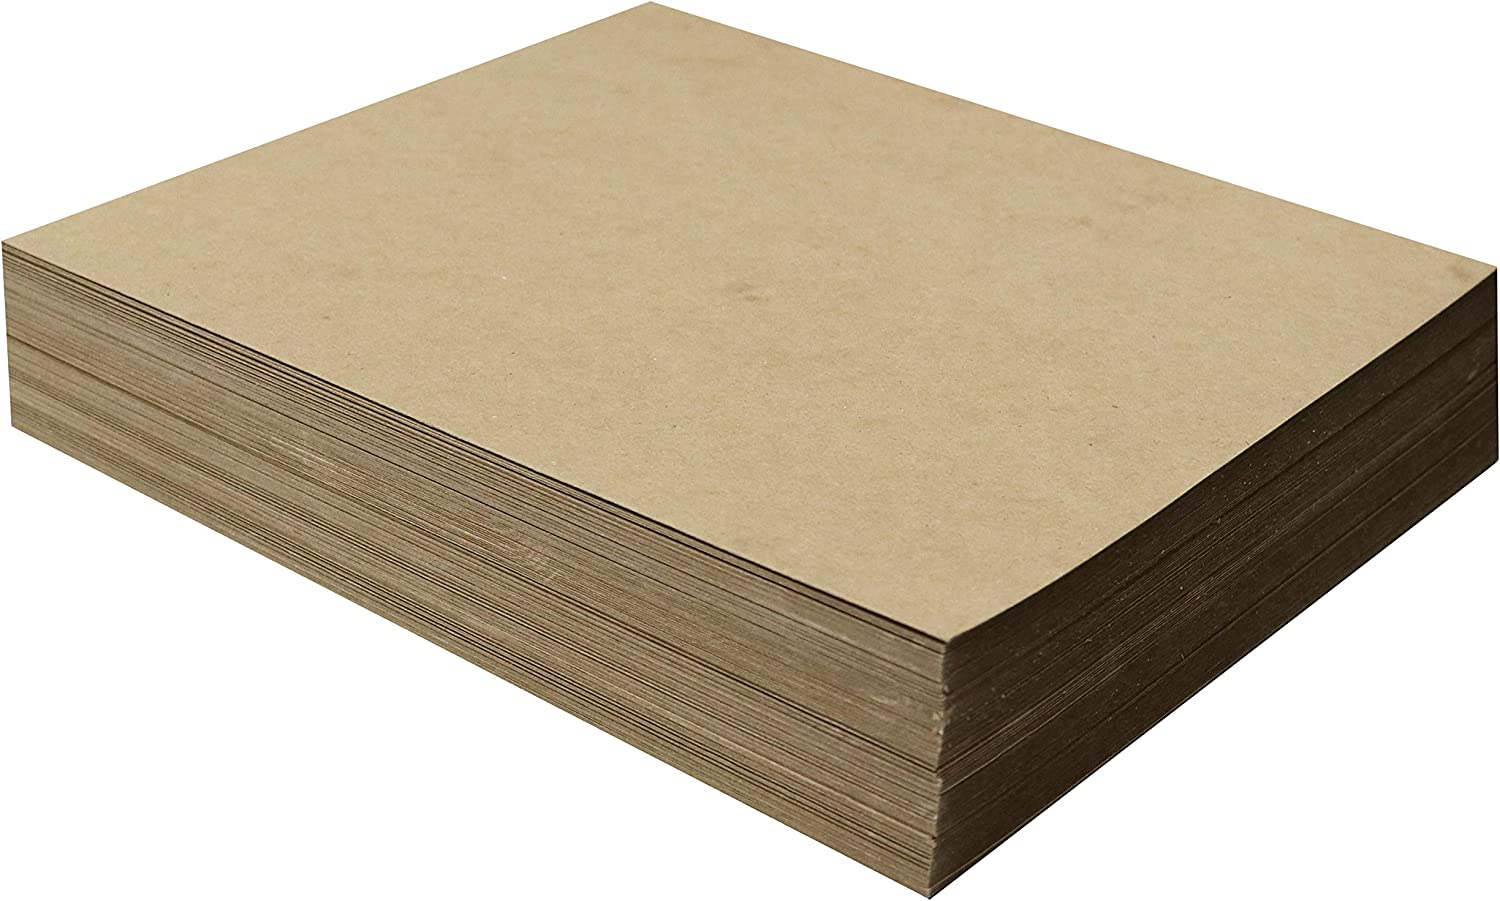 100 Chipboard Sheets 11 x 14 inch - 22pt (Point) Light Weight Brown Kraft Cardboard for Scrapbooking & Picture Frame Backing (.022 Caliper Thick) Paper Board | MagicWater Supply